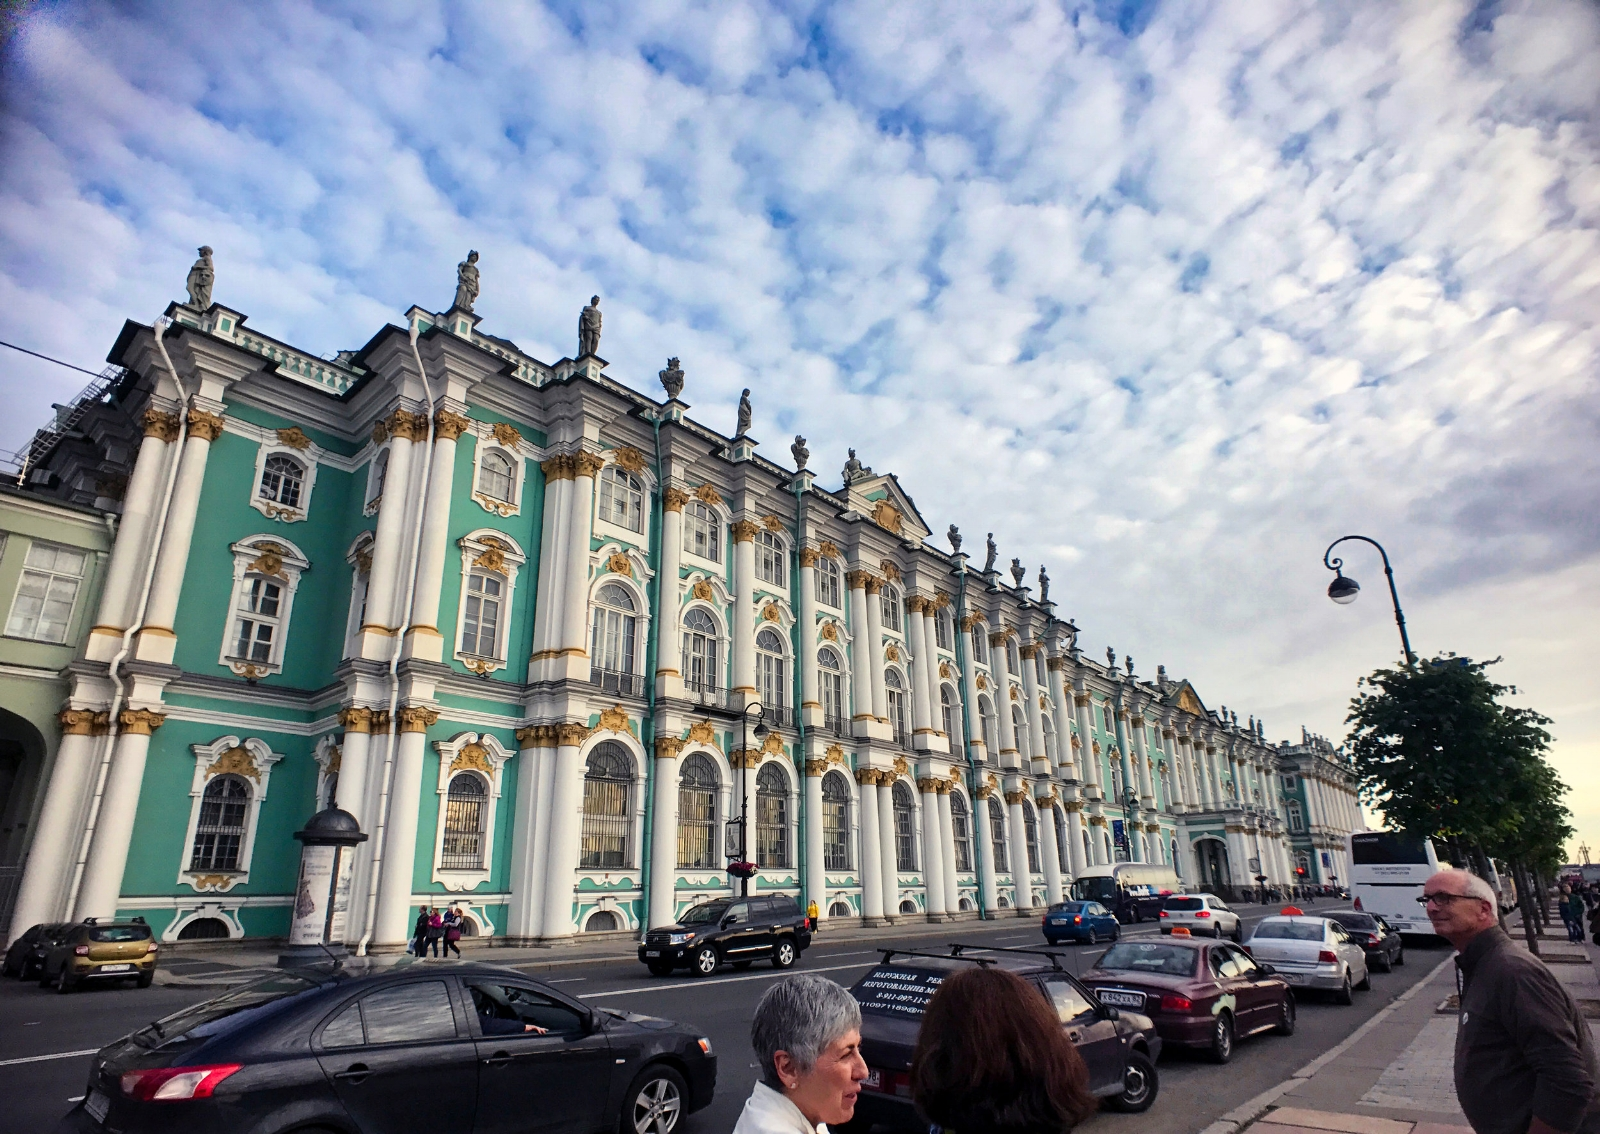 The Winter Palace at the State Hermitage Museum, the former residence of Peter the Great.